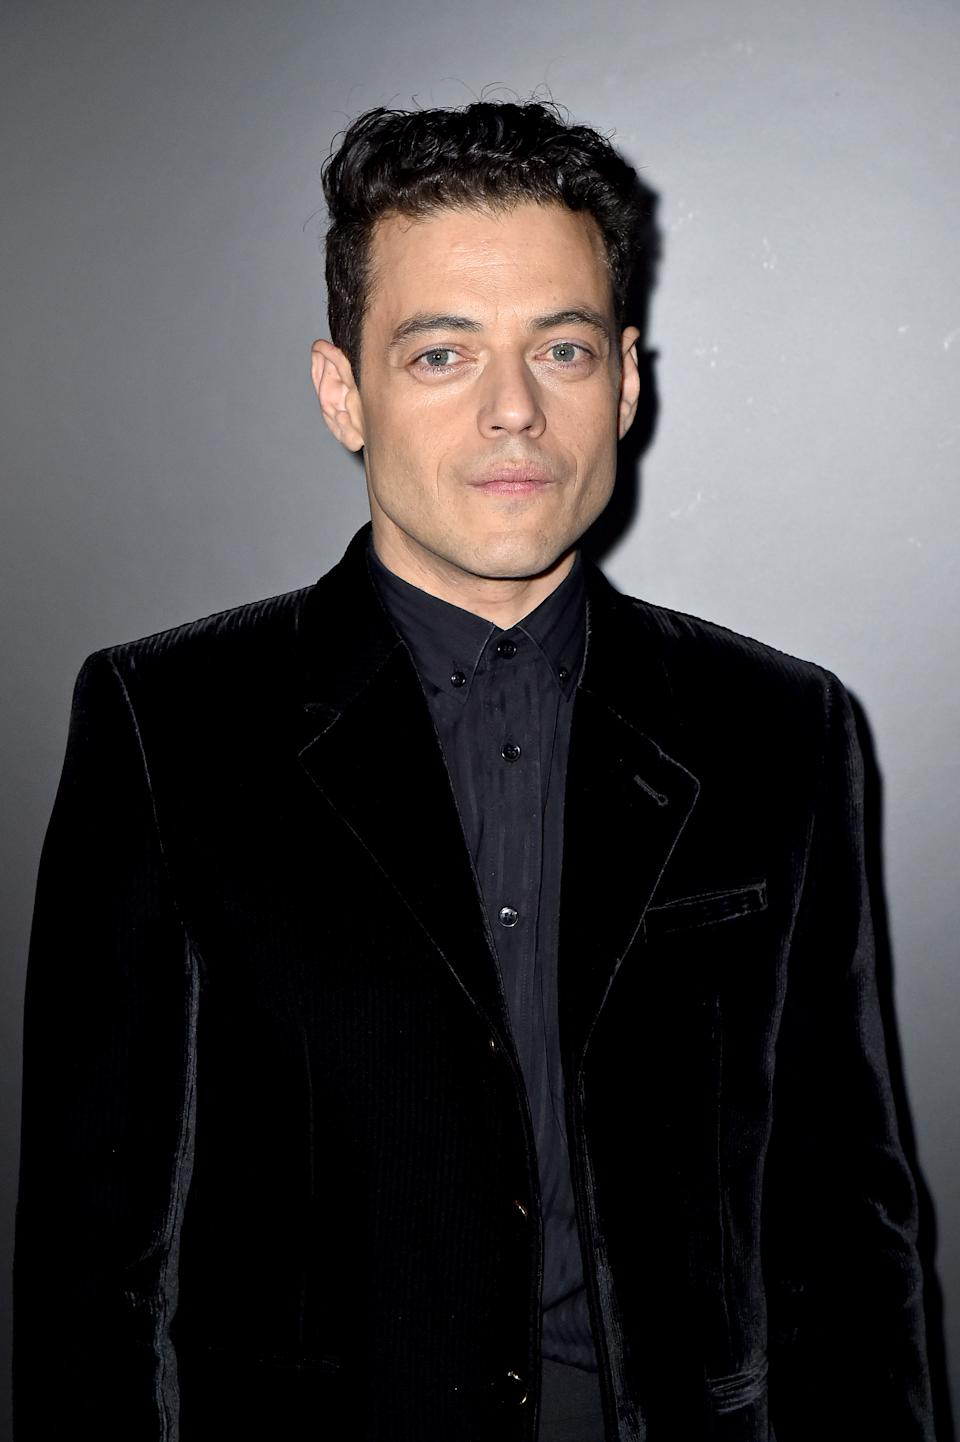 Rami Malek attends the Saint Laurent show as part of the Paris Fashion Week Womenswear Fall/Winter 2020/2021 on February 25, 2020 in Paris, France. (Photo by Dominique Charriau/WireImage)